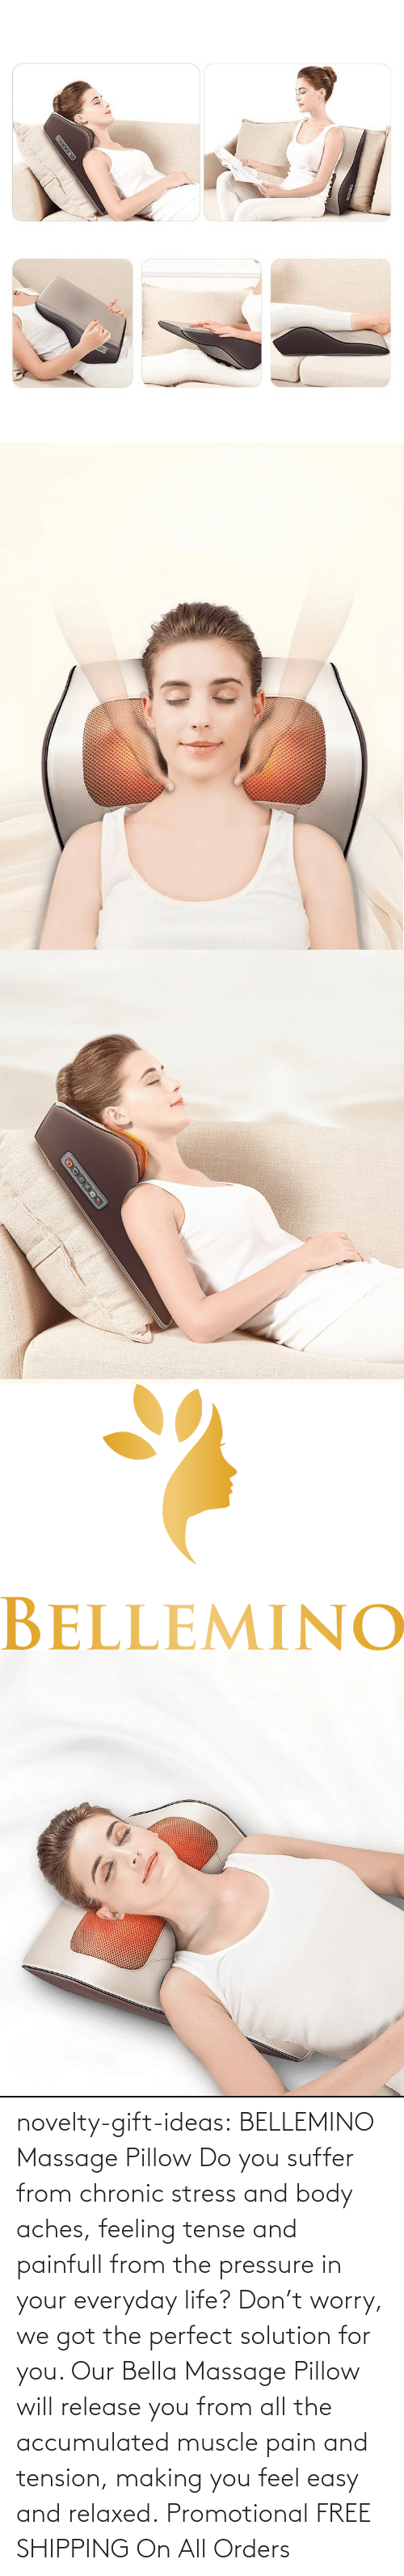 worry: novelty-gift-ideas:   BELLEMINO Massage Pillow     Do you suffer from chronic stress and body aches, feeling tense and painfull from the pressure in your everyday life? Don't worry, we got the perfect solution for you. Our Bella Massage Pillow will release you from all the accumulated muscle pain and tension, making you feel easy and relaxed.     Promotional FREE SHIPPING On All Orders